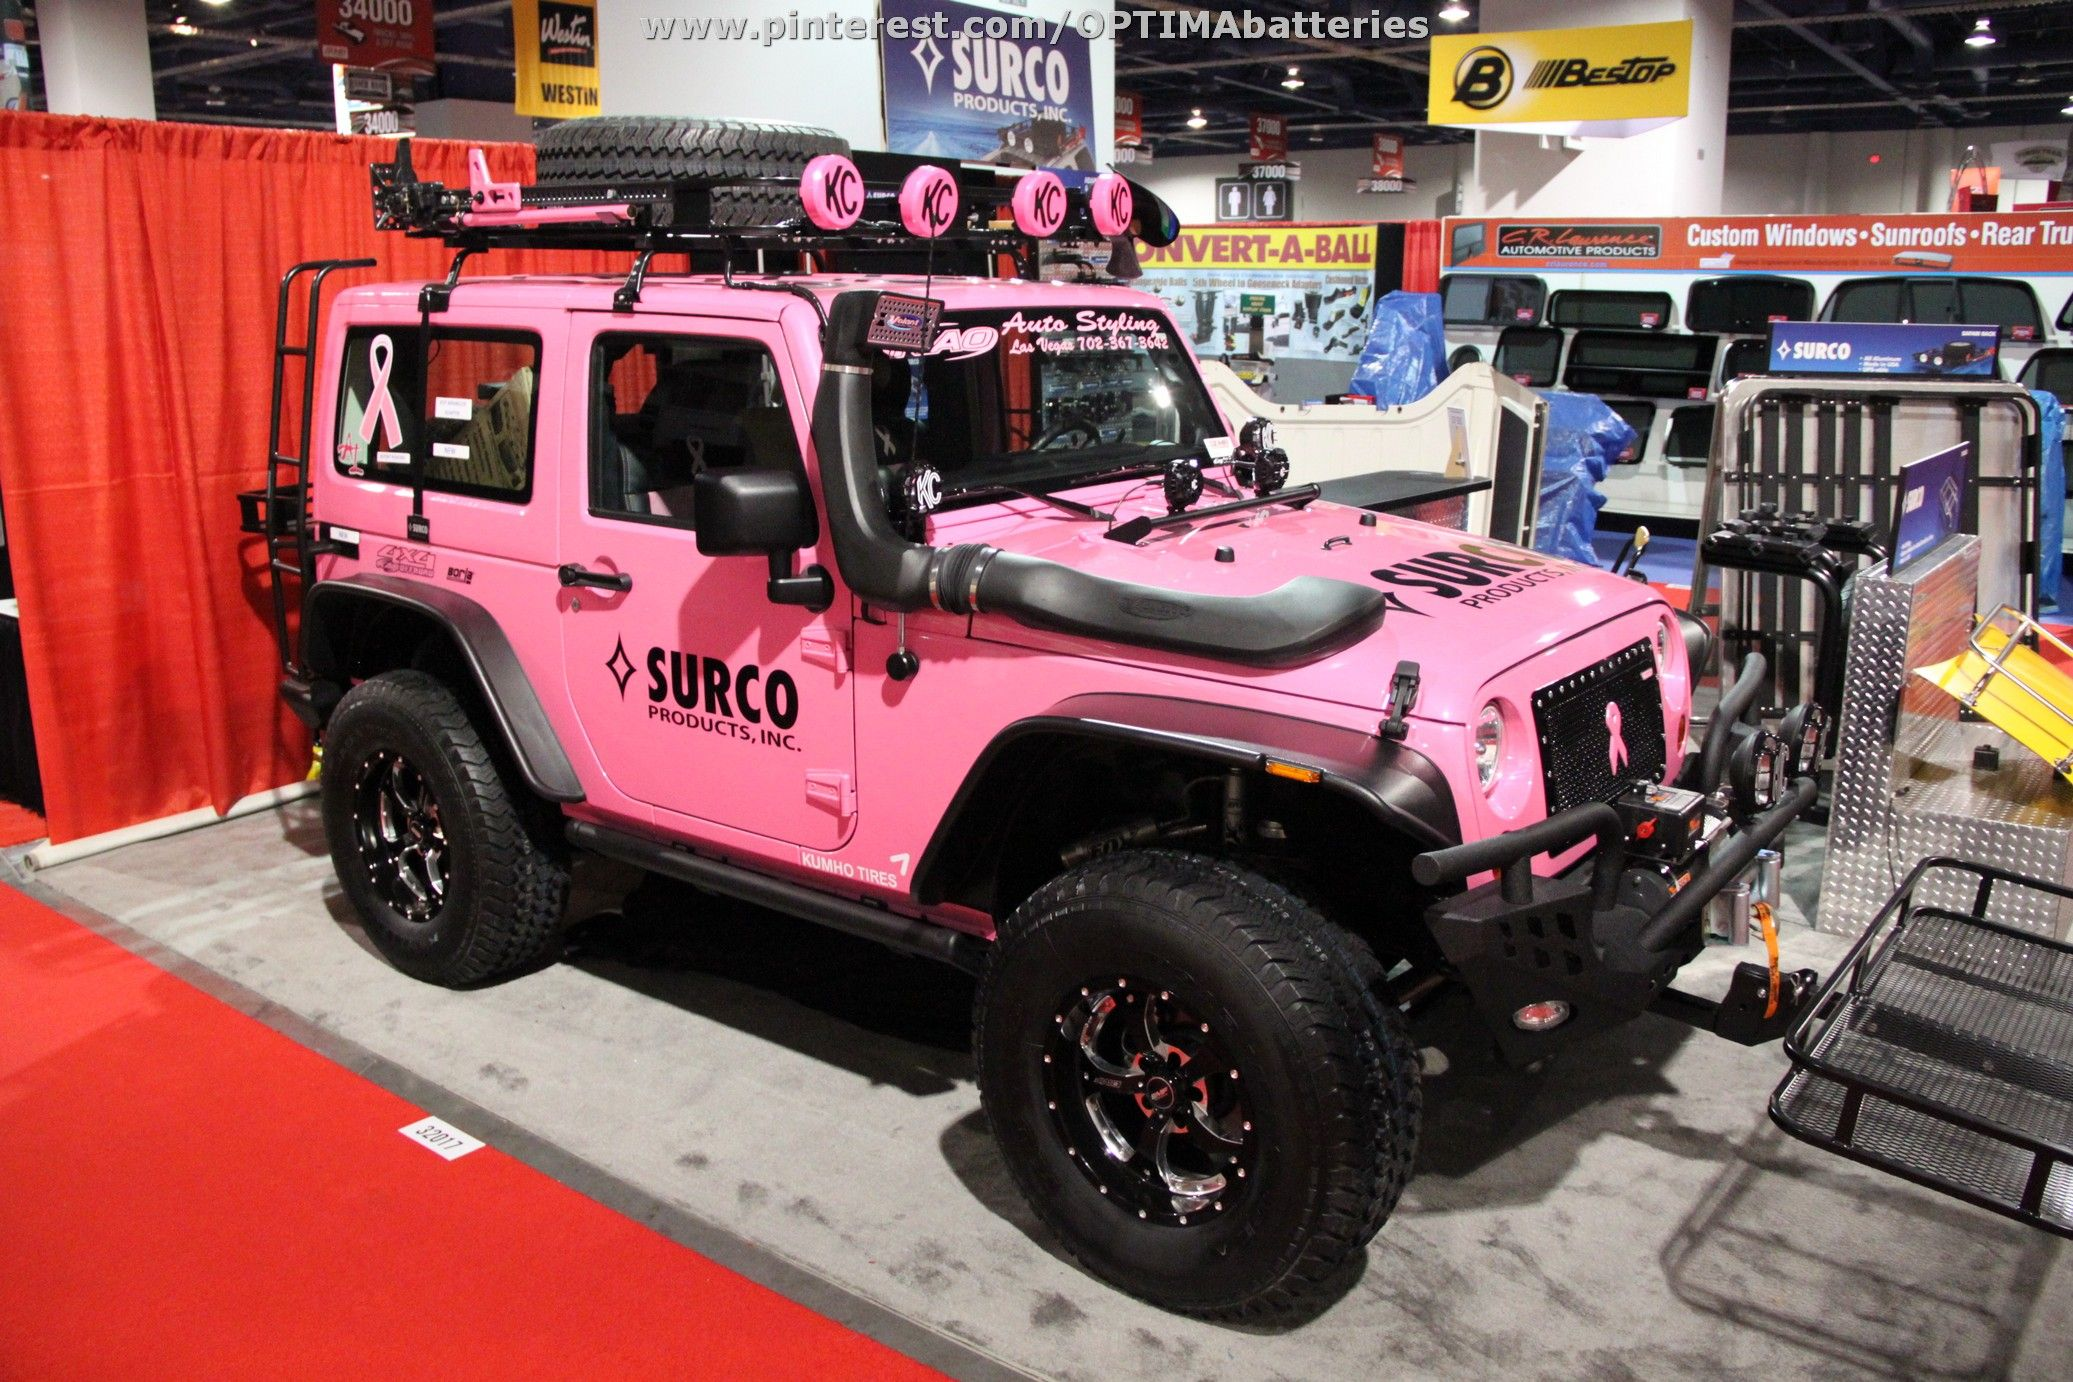 Pink jeep from sema 2012 sold at barrett jackson scottsdale for 66 000